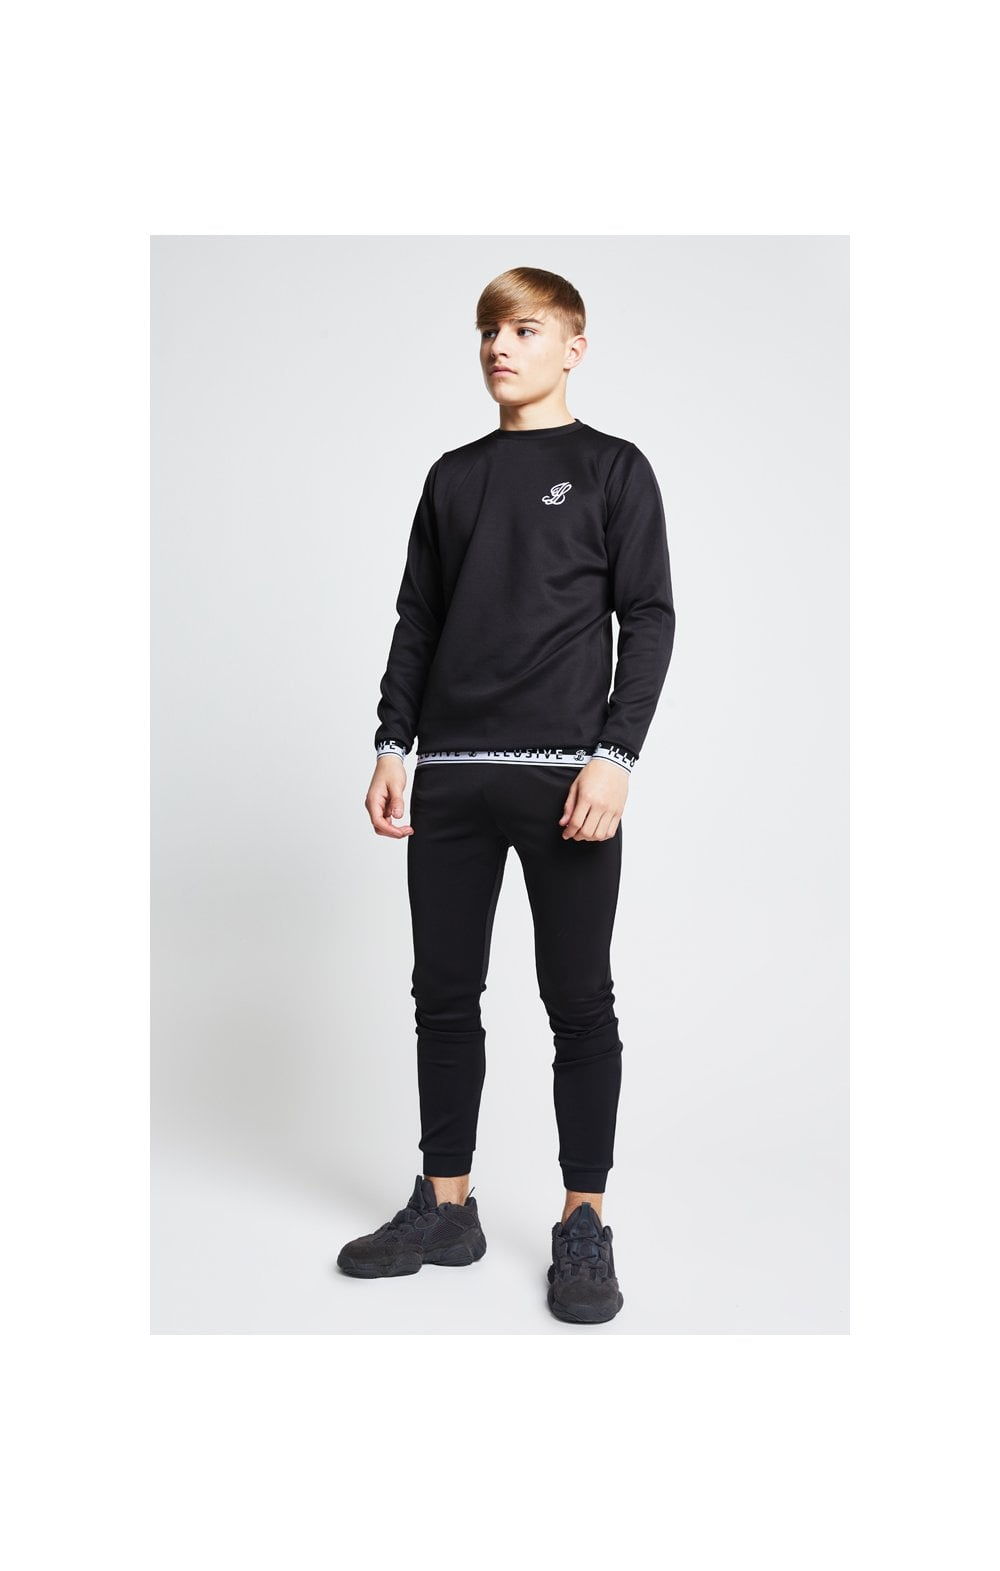 Illusive London Taped Crew Sweater - Black (2)